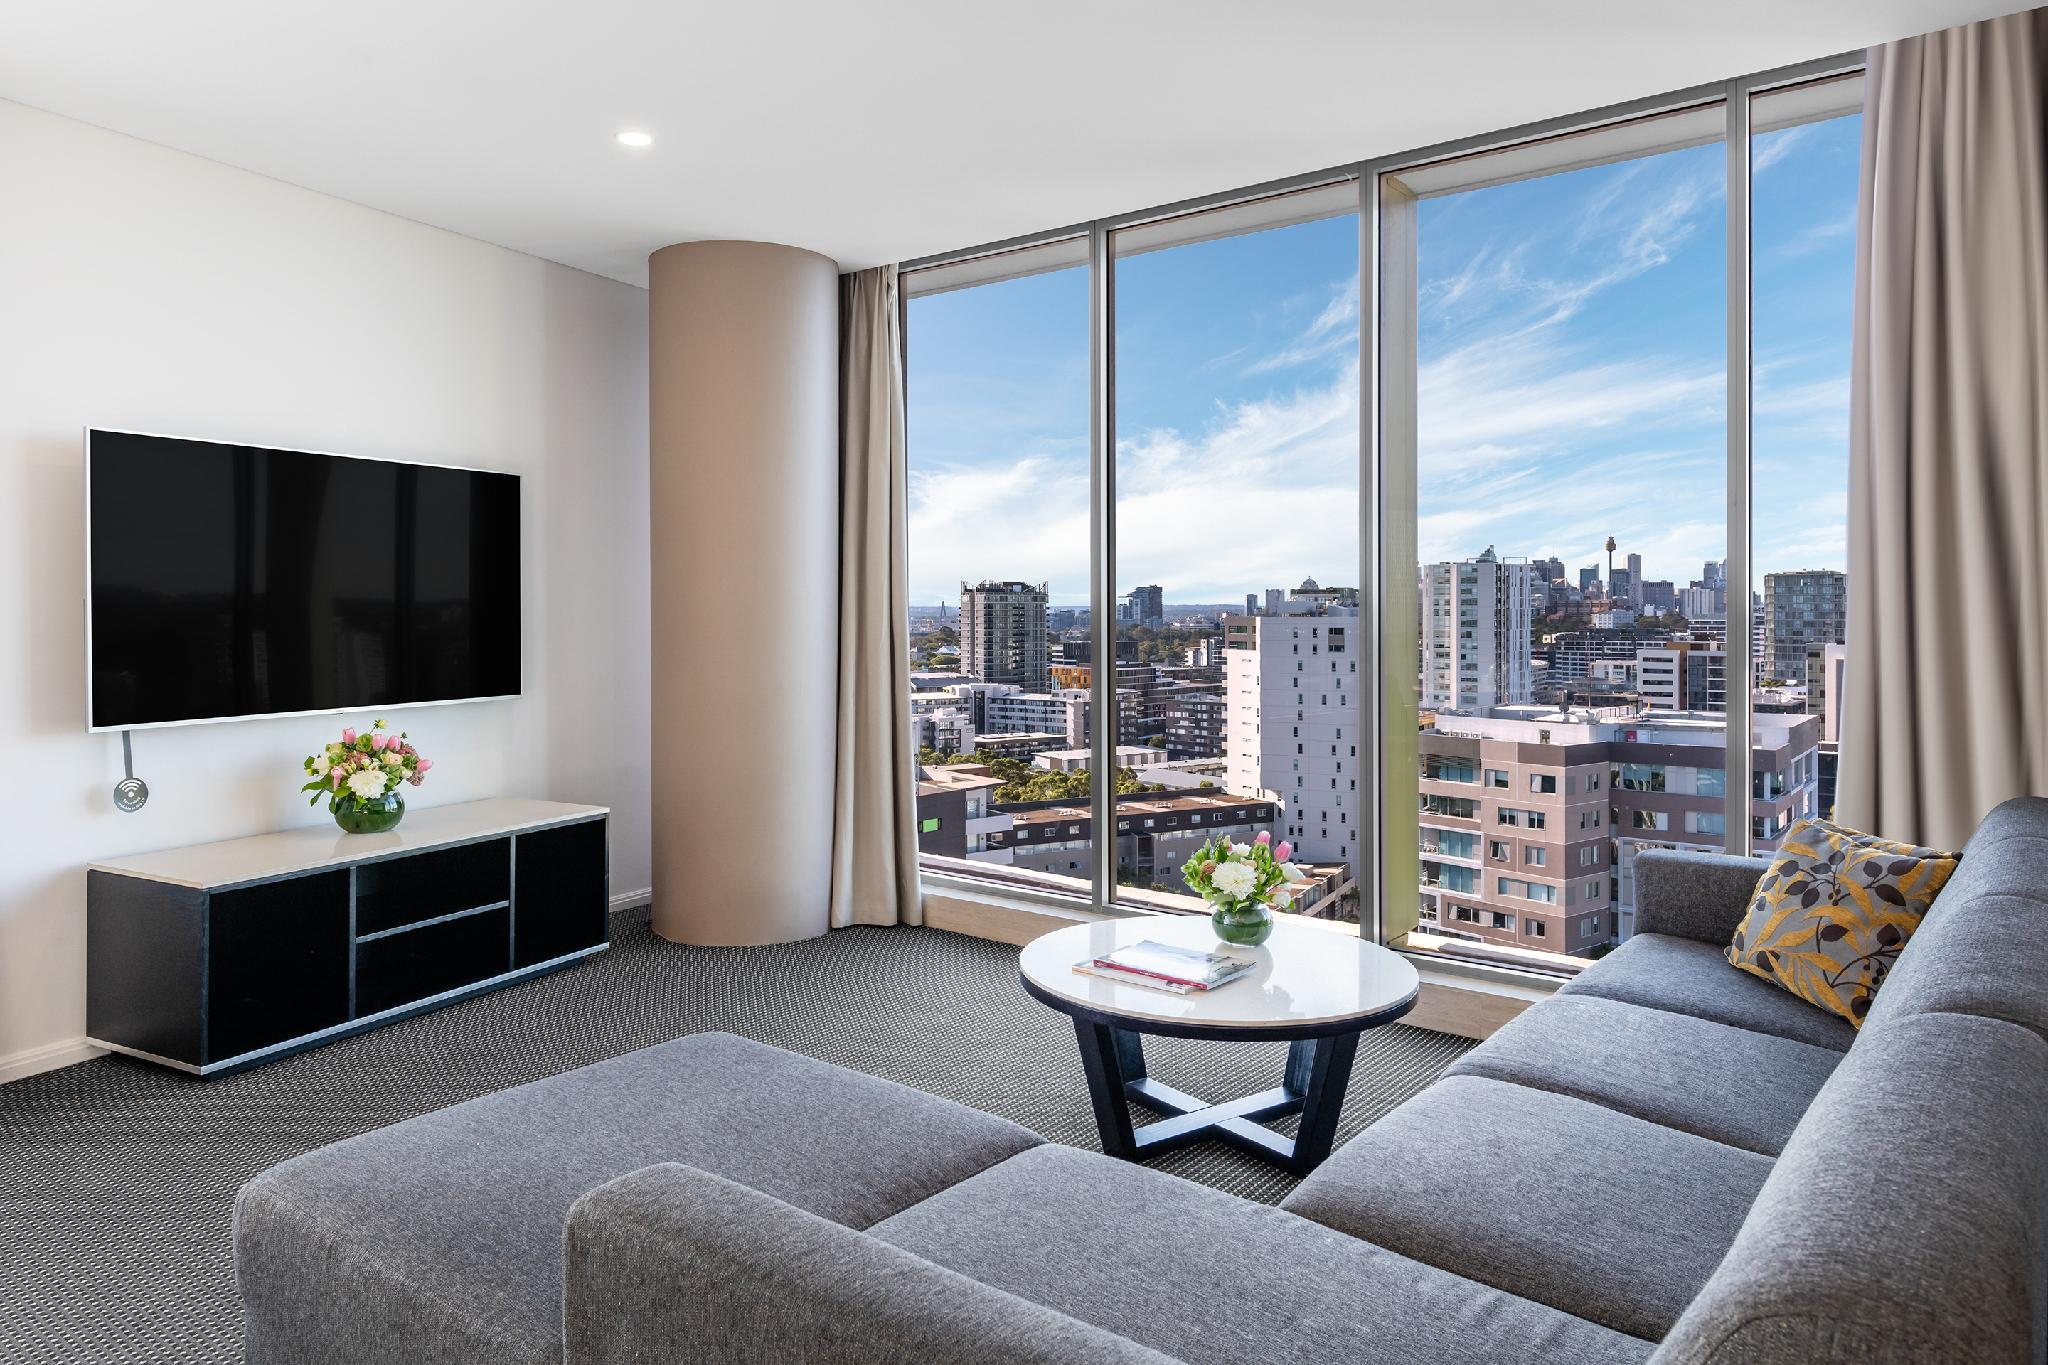 Best Price on Meriton Suites Zetland in Sydney + Reviews!